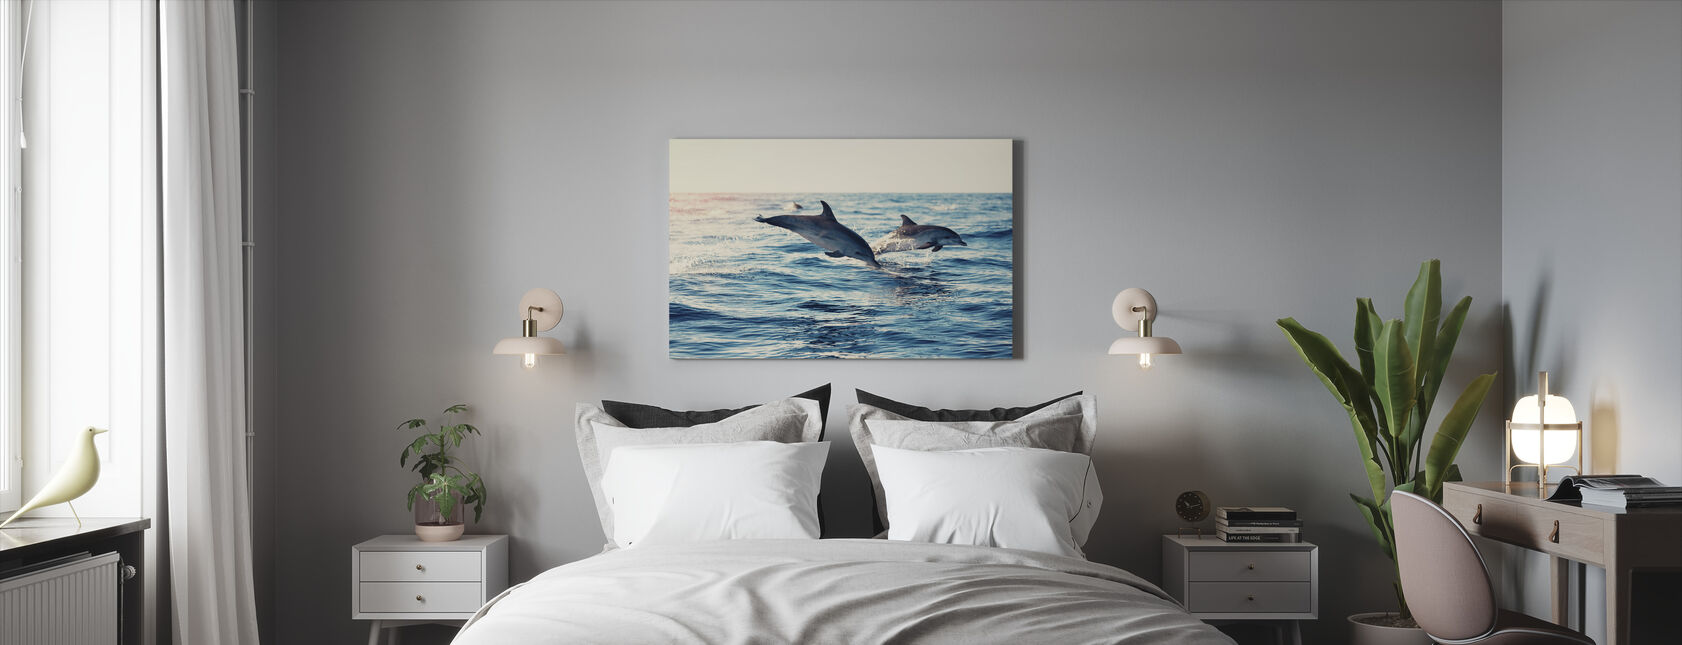 Dolphins Jumping from the Sea - Canvas print - Bedroom